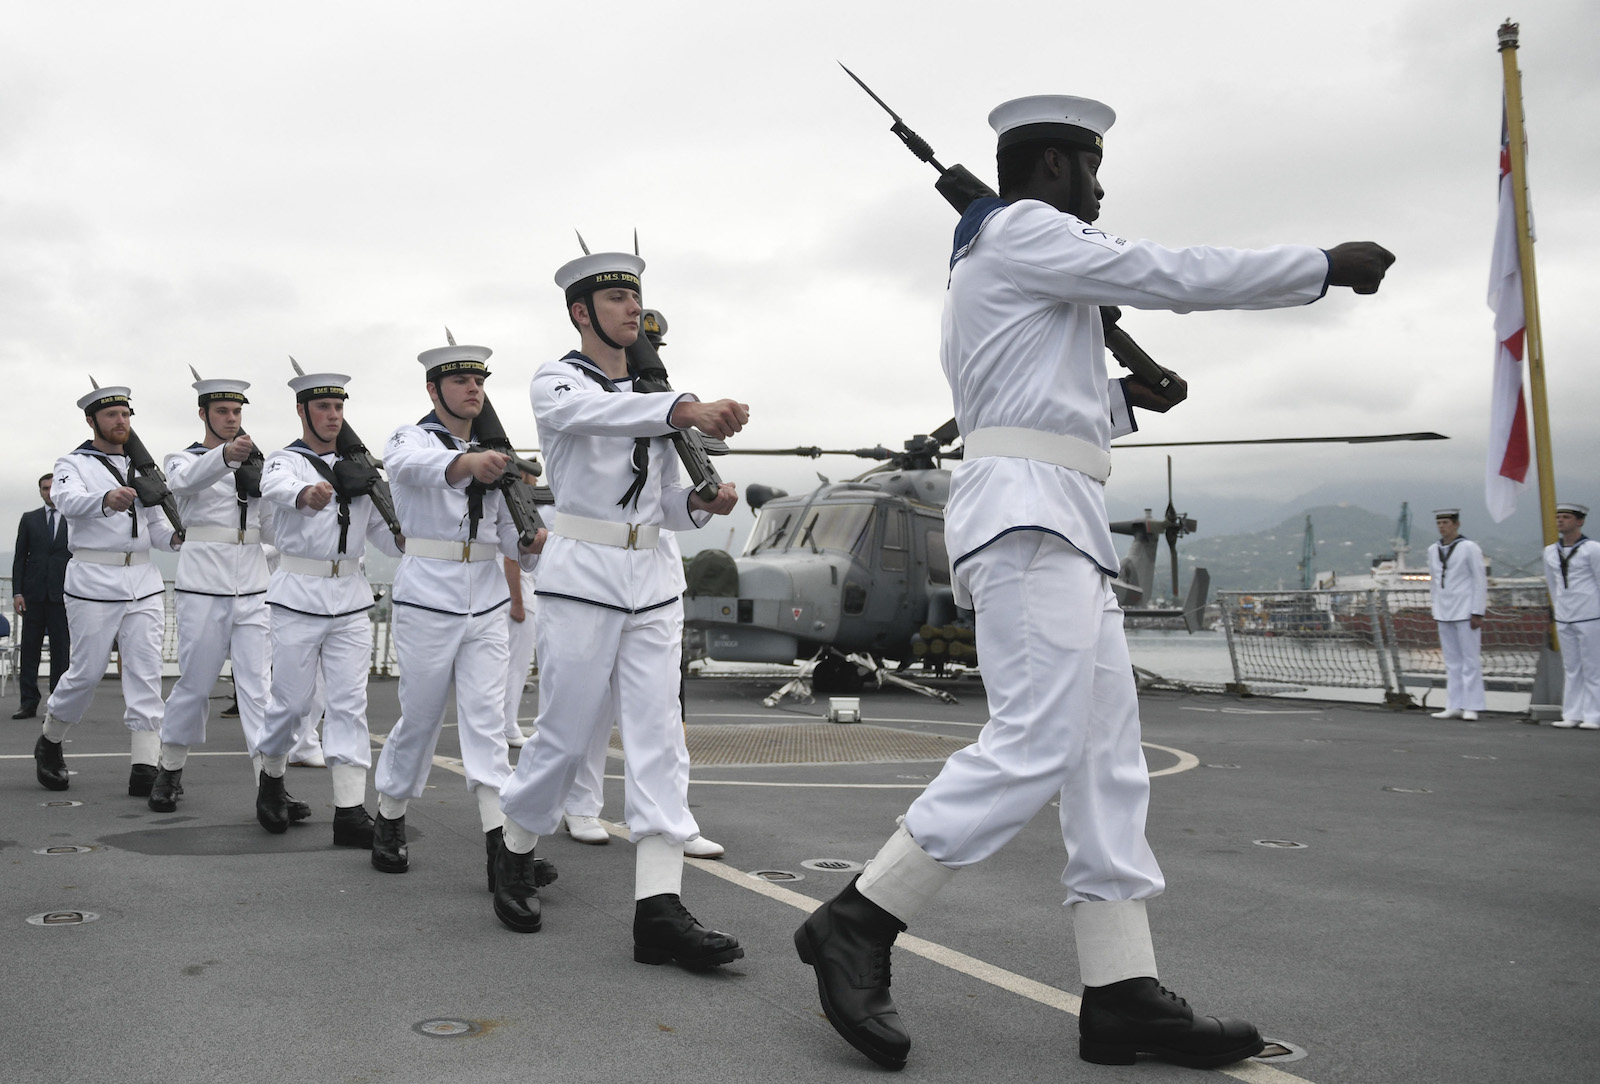 British Royal Navy members marching onboard the warship HMS Defender in Georgia's Black Sea port of Batumi on June 26 as the Defender makes a port call for joint exercises with the NATO-aspirant country's coast guard. Photo: AFP / British embassy in Georgia